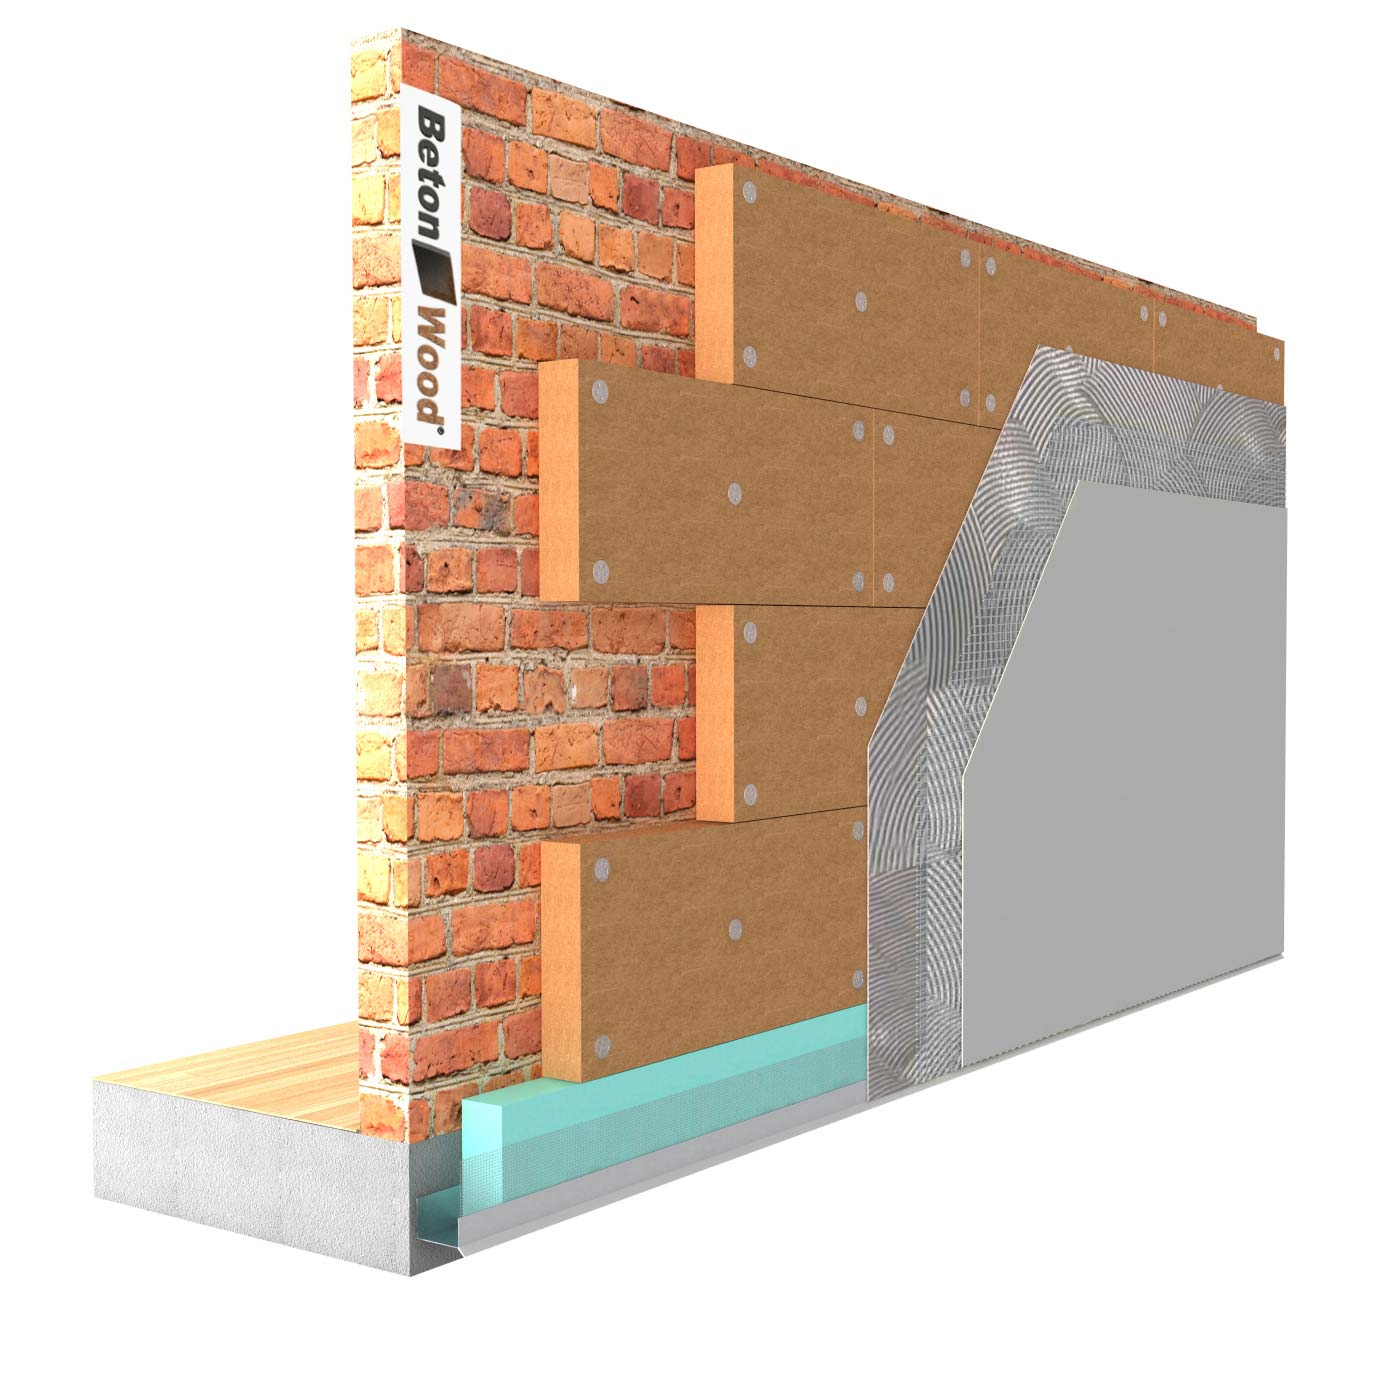 External thermal insulation system in Protect Wood fiber